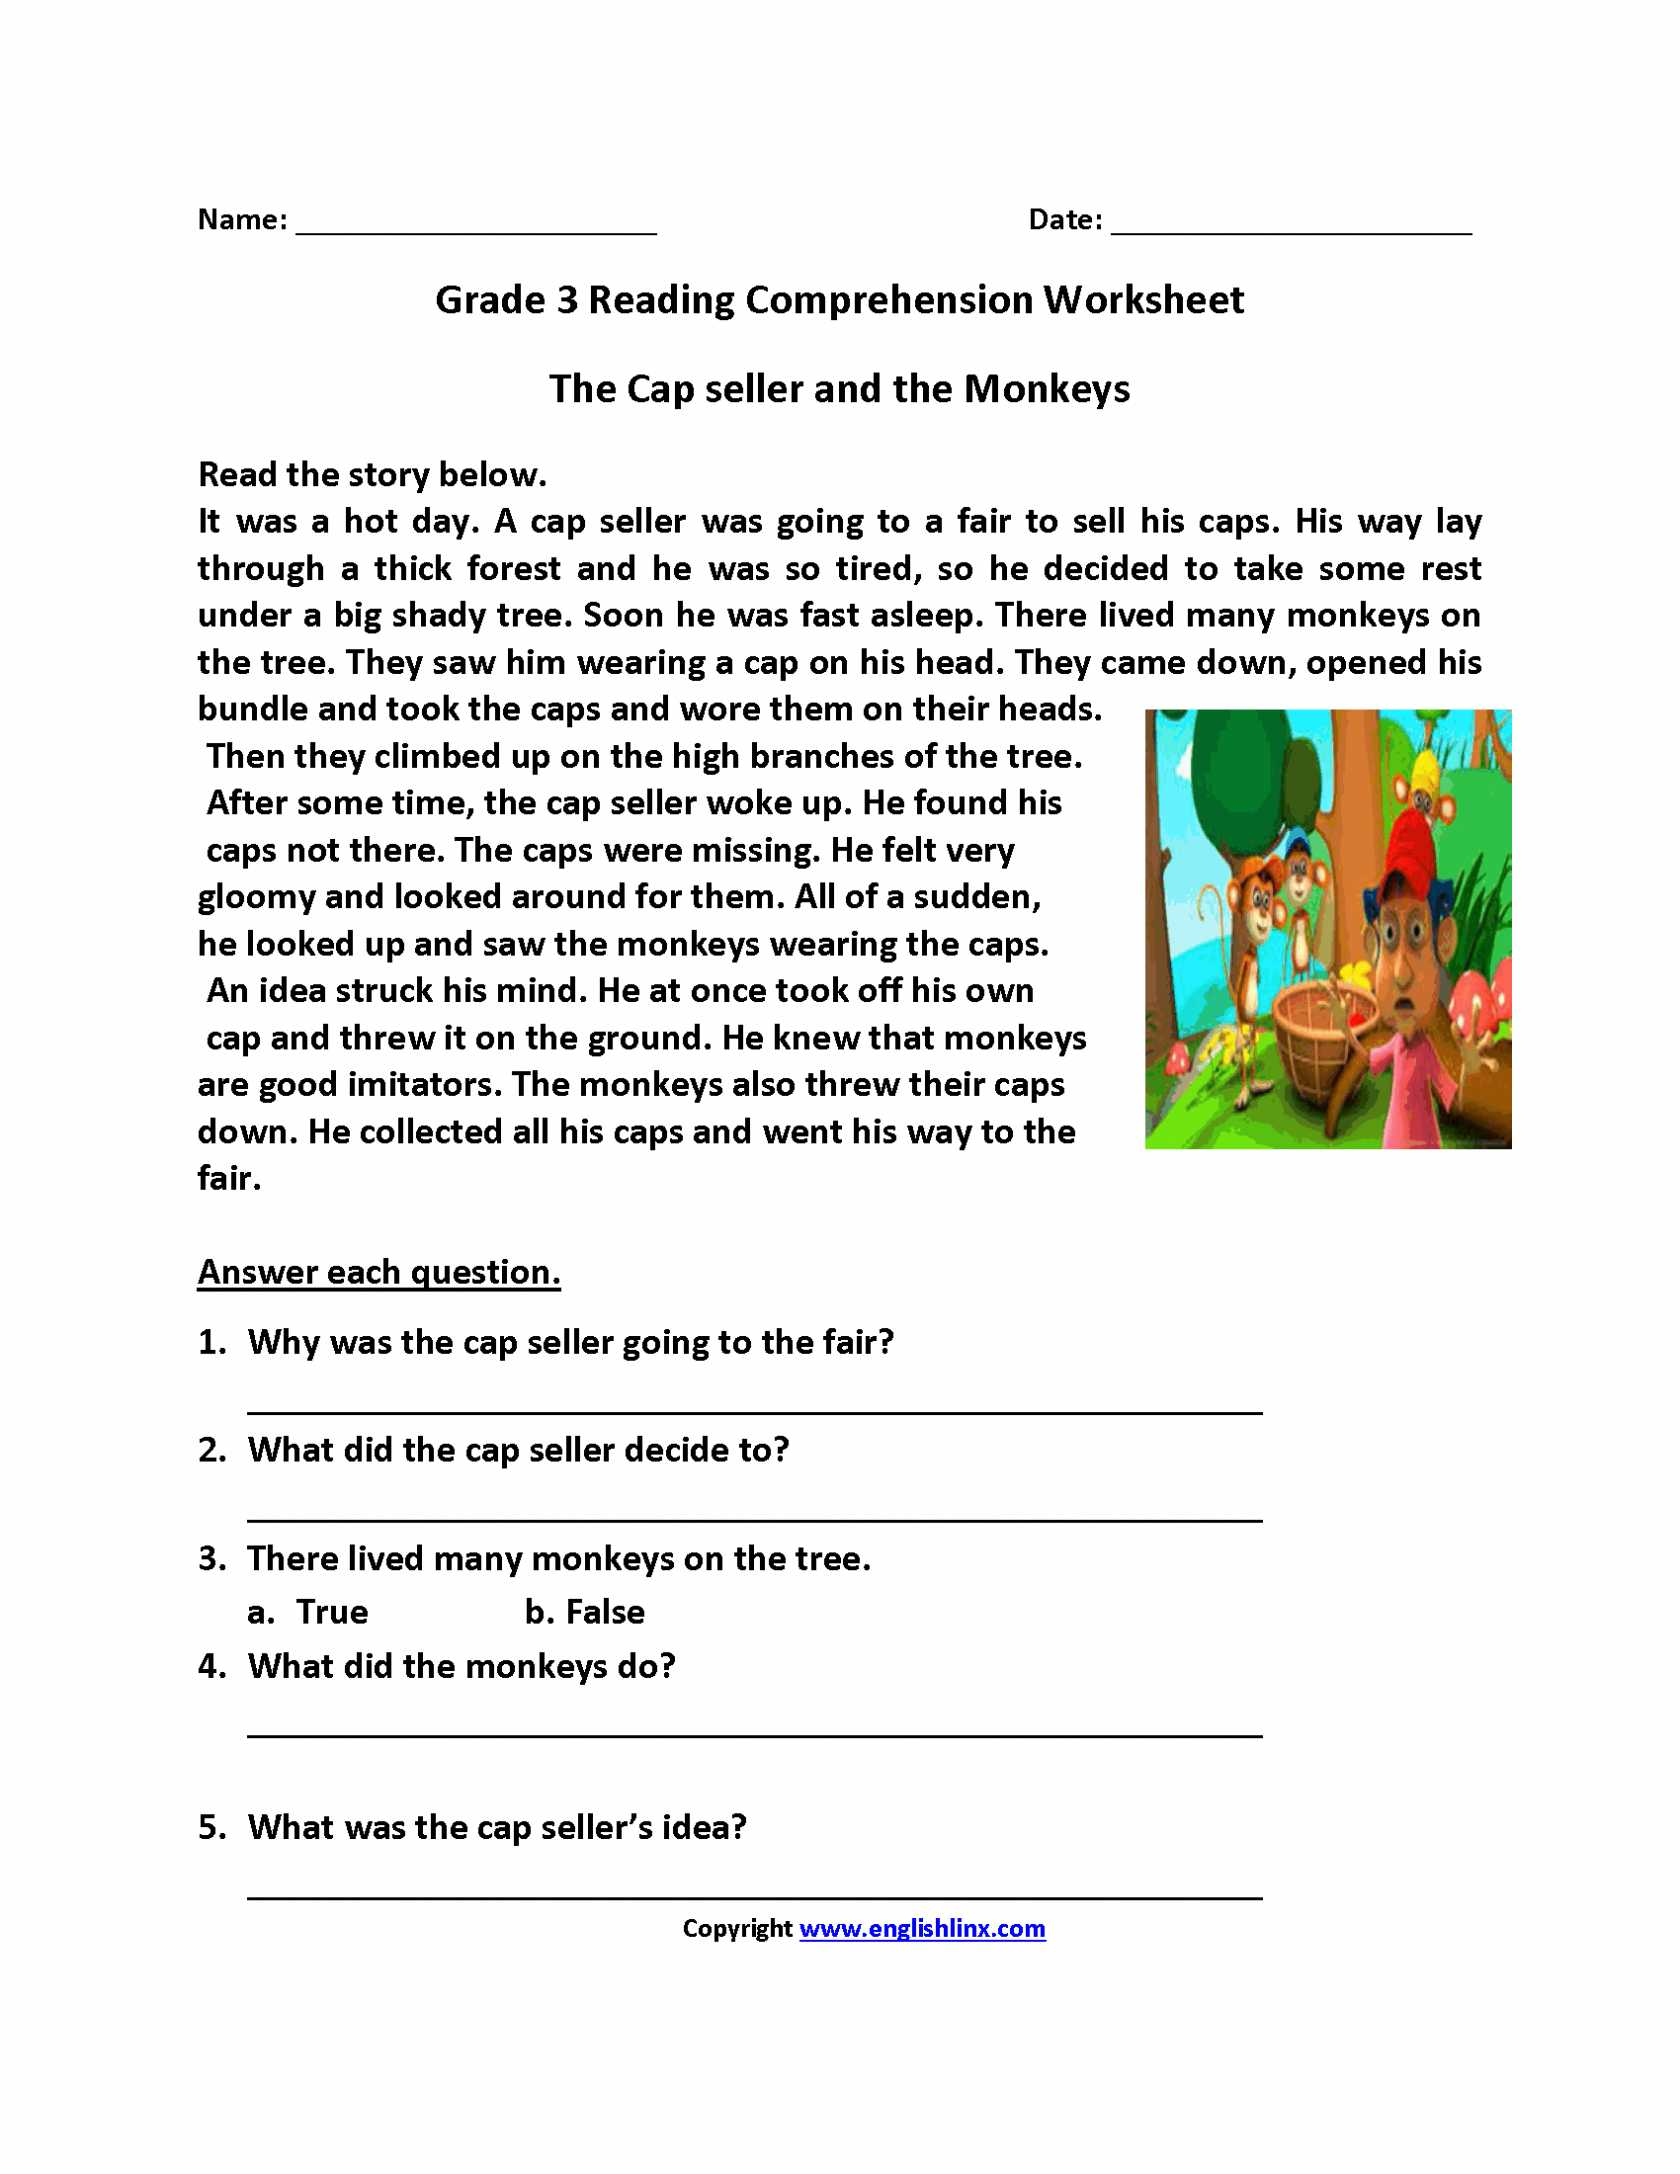 Spanish Reading Comprehension Worksheets together with Practice Reading Passages for 3rd Grade Exercises Graders Line